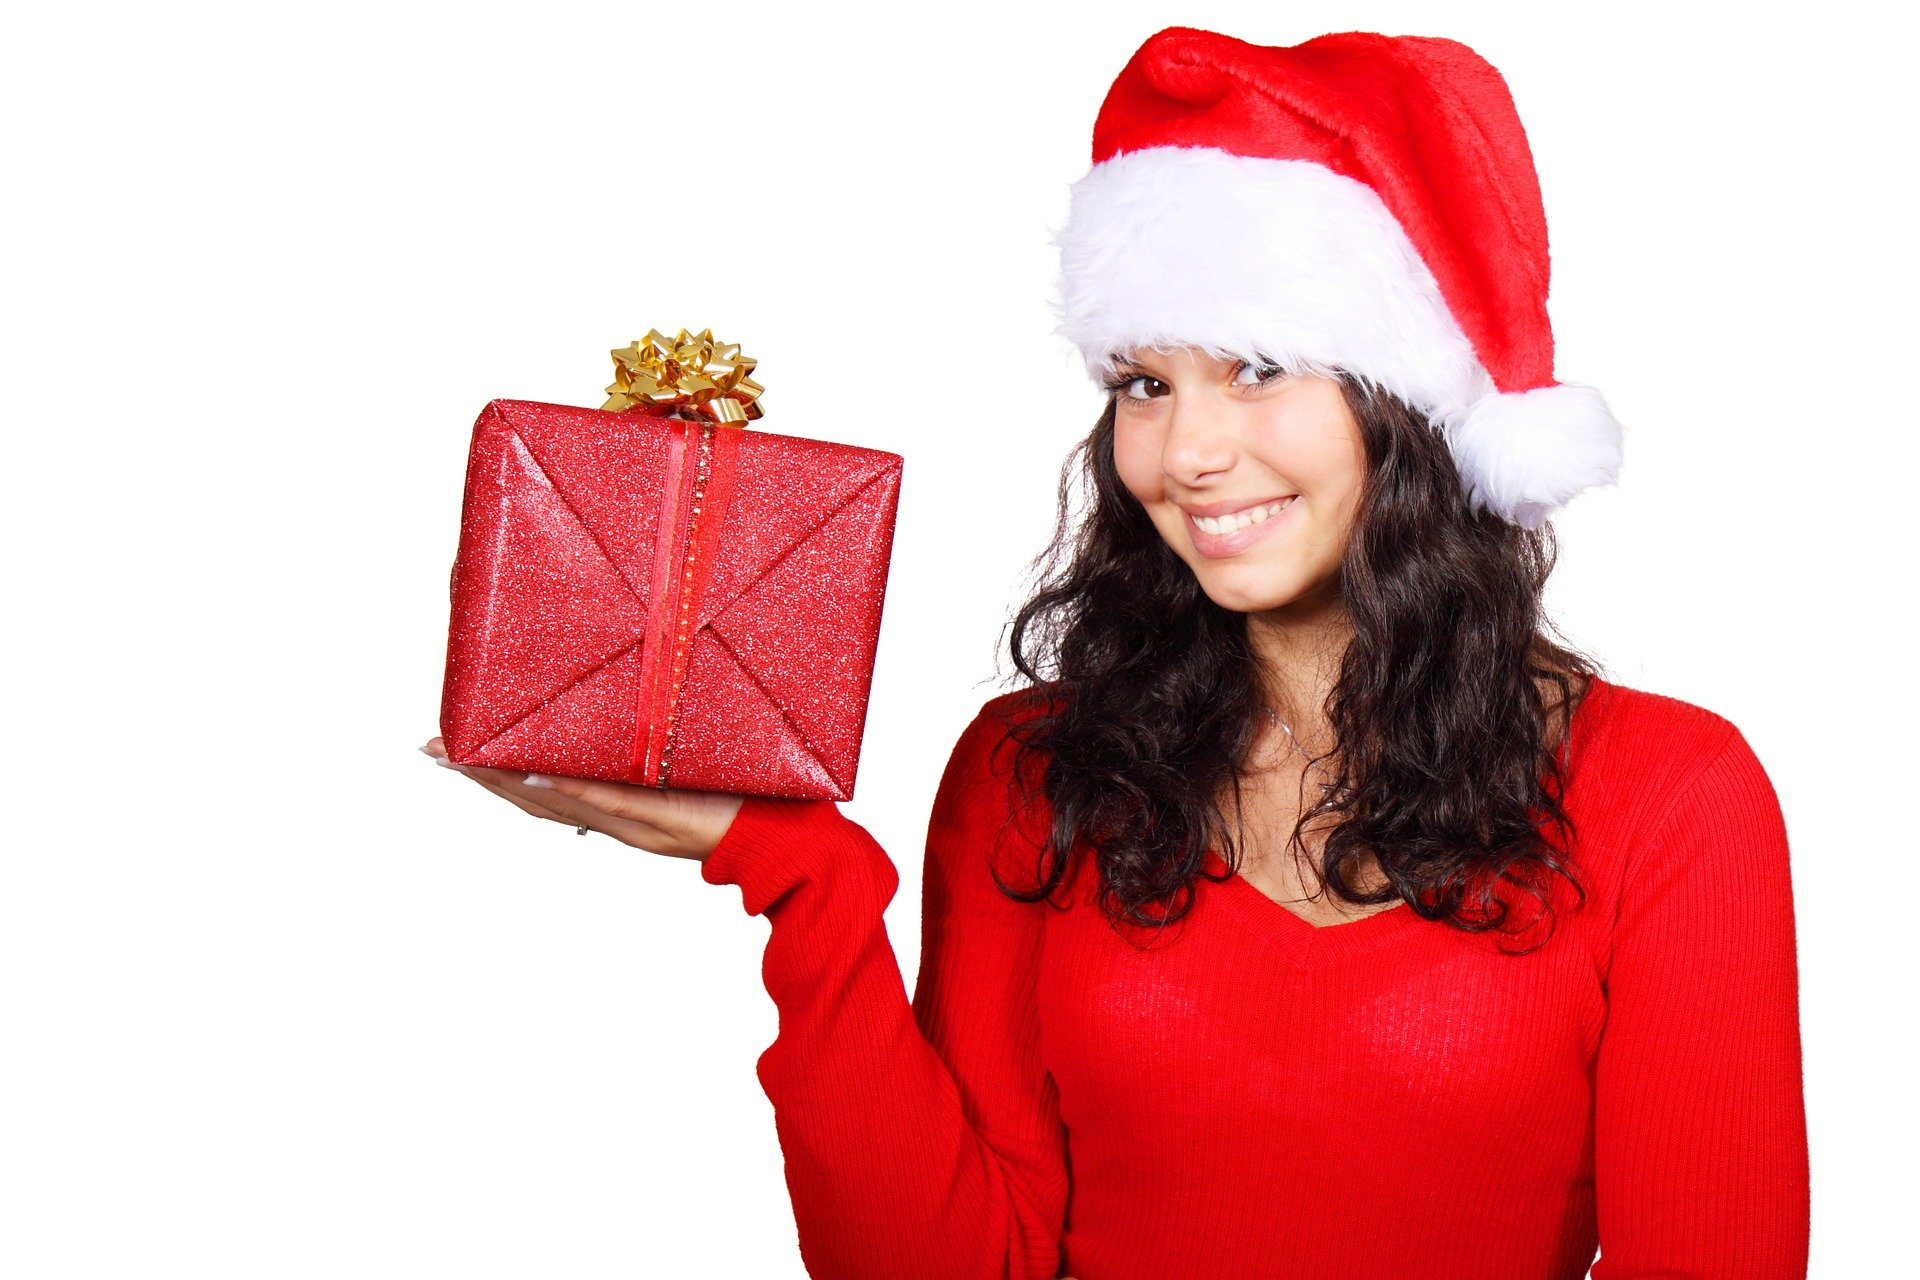 Girl holding a gift, santa outfit